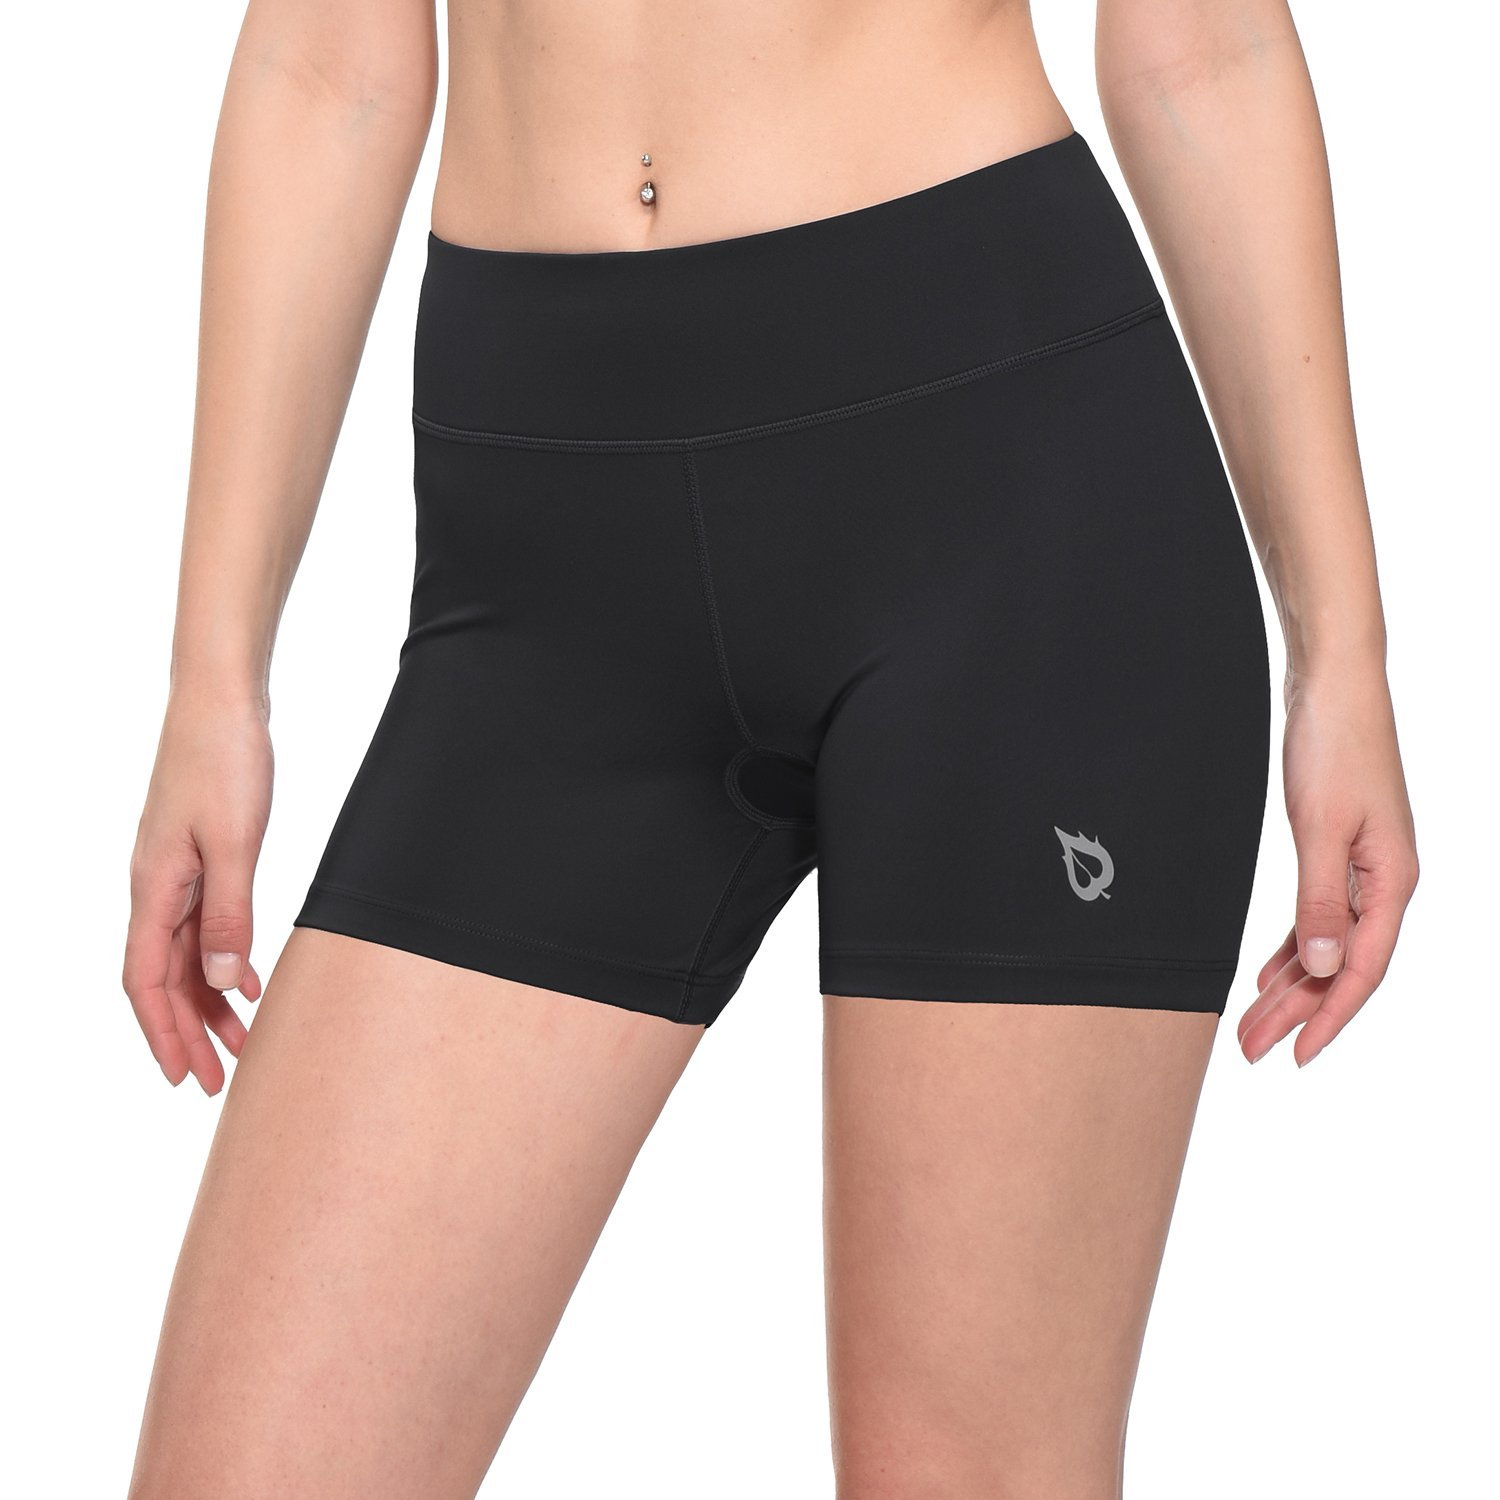 Baleaf Women's 4'' Compression Volleyball Shorts Training Workout Back Pocket Black Size L by Baleaf